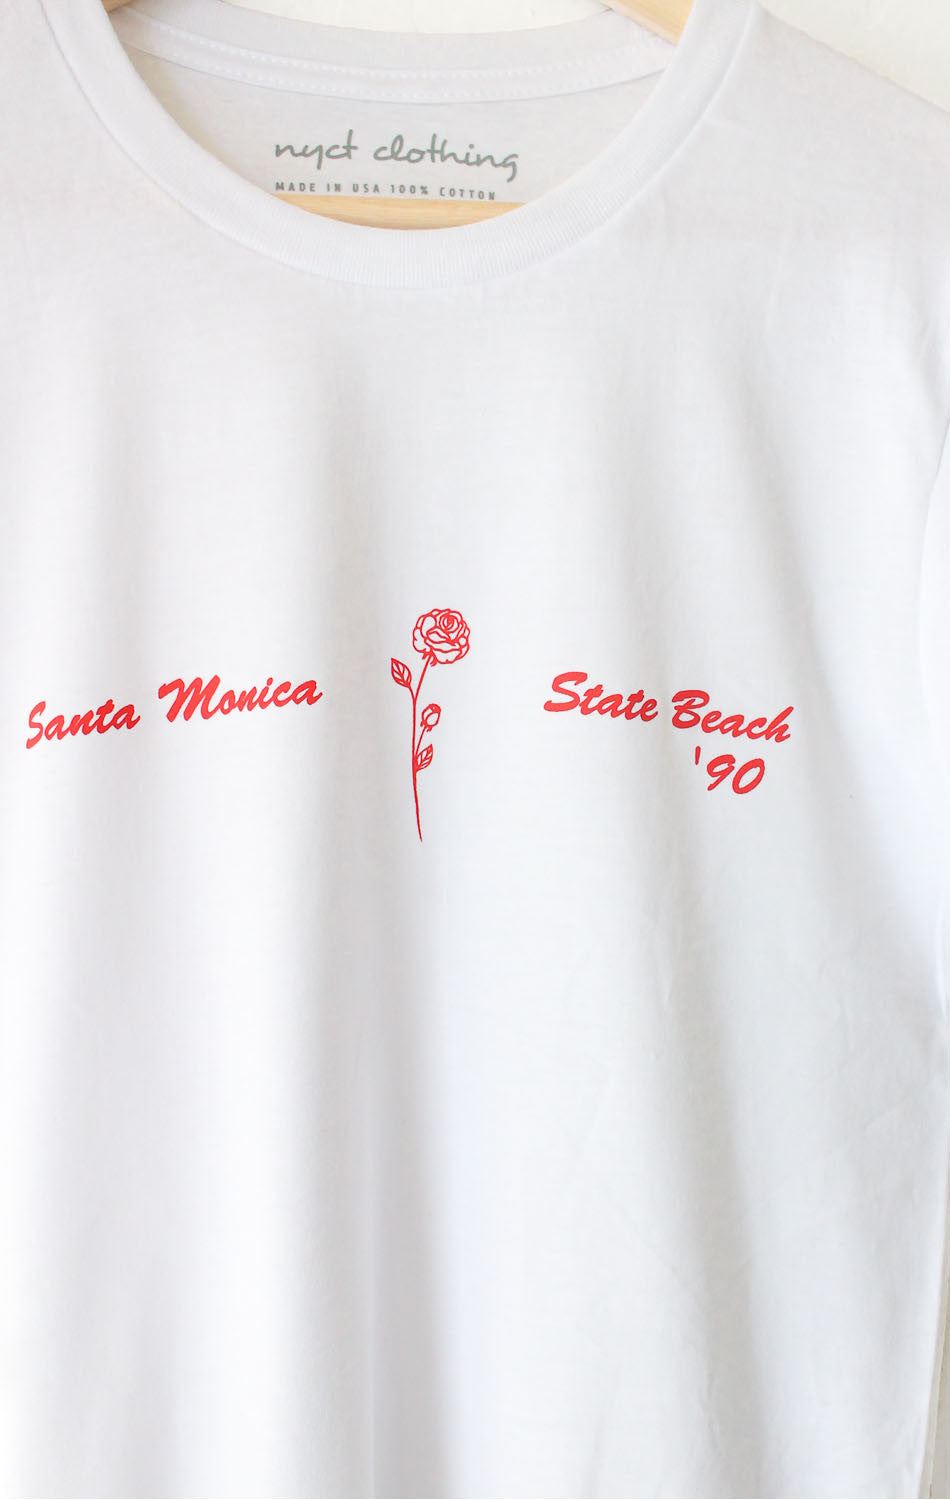 NYCT Clothing Santa Monica State Beach '90 Tee